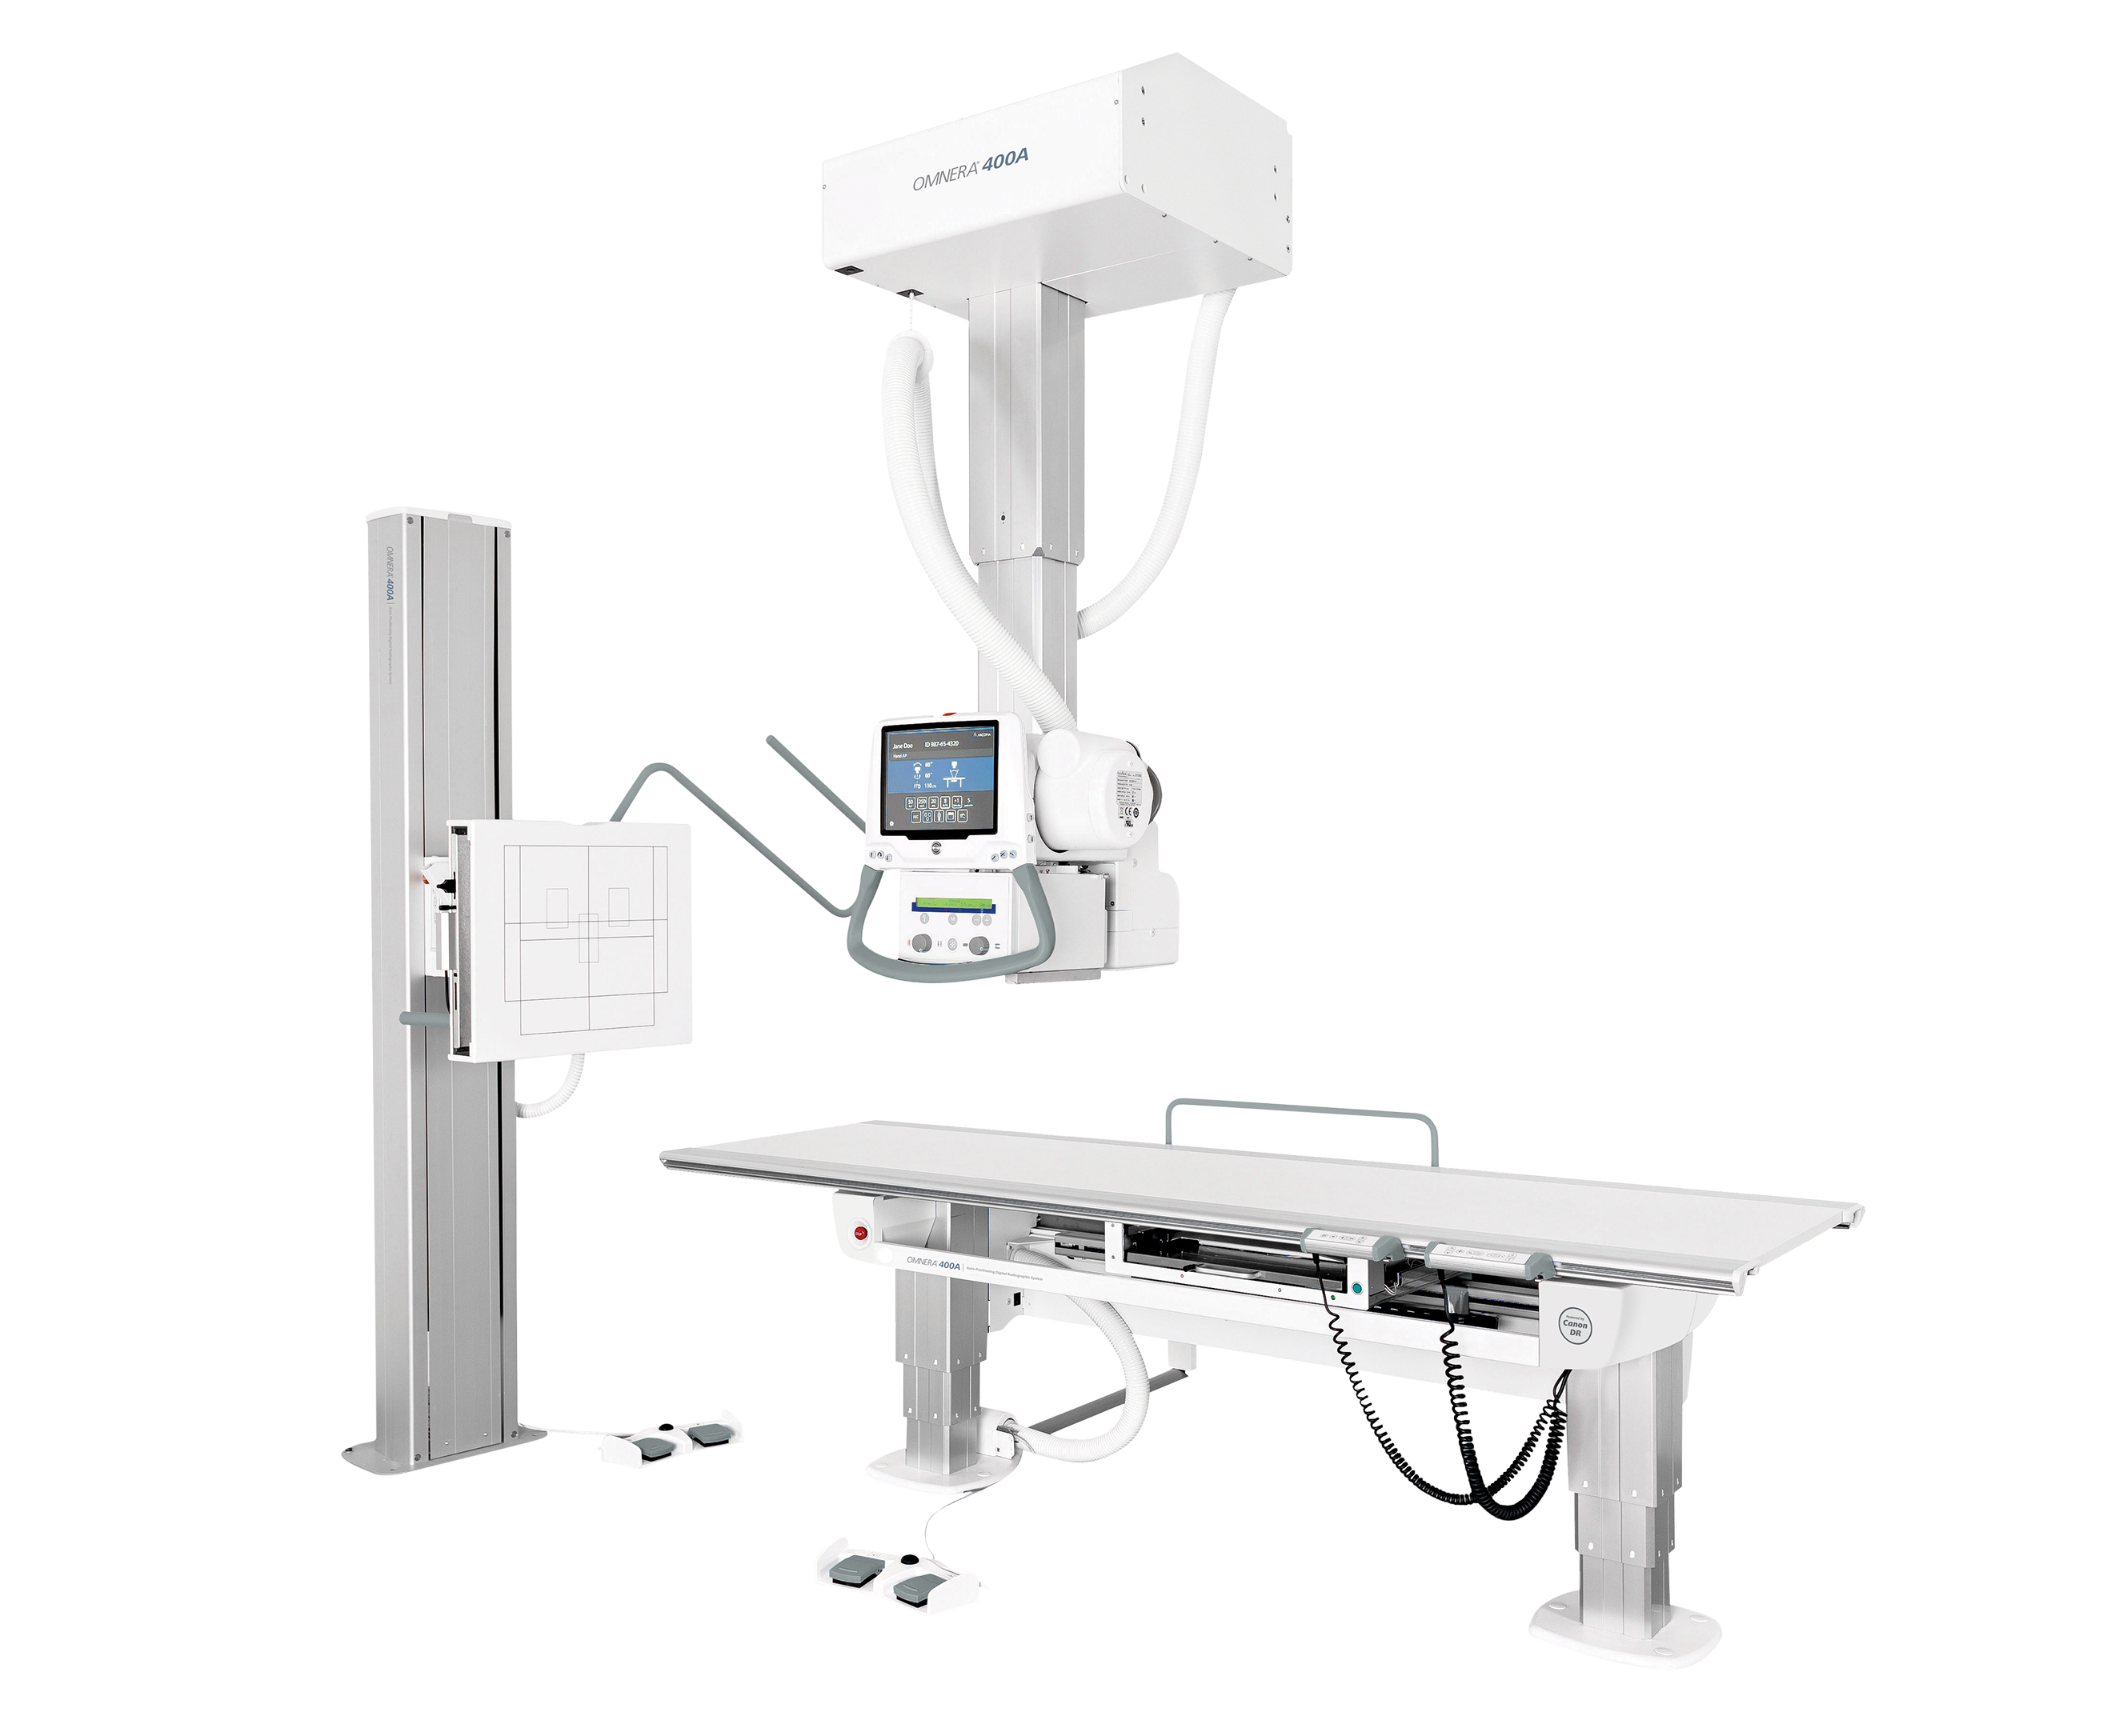 OMNERA 400A Digital Radiographic Systems